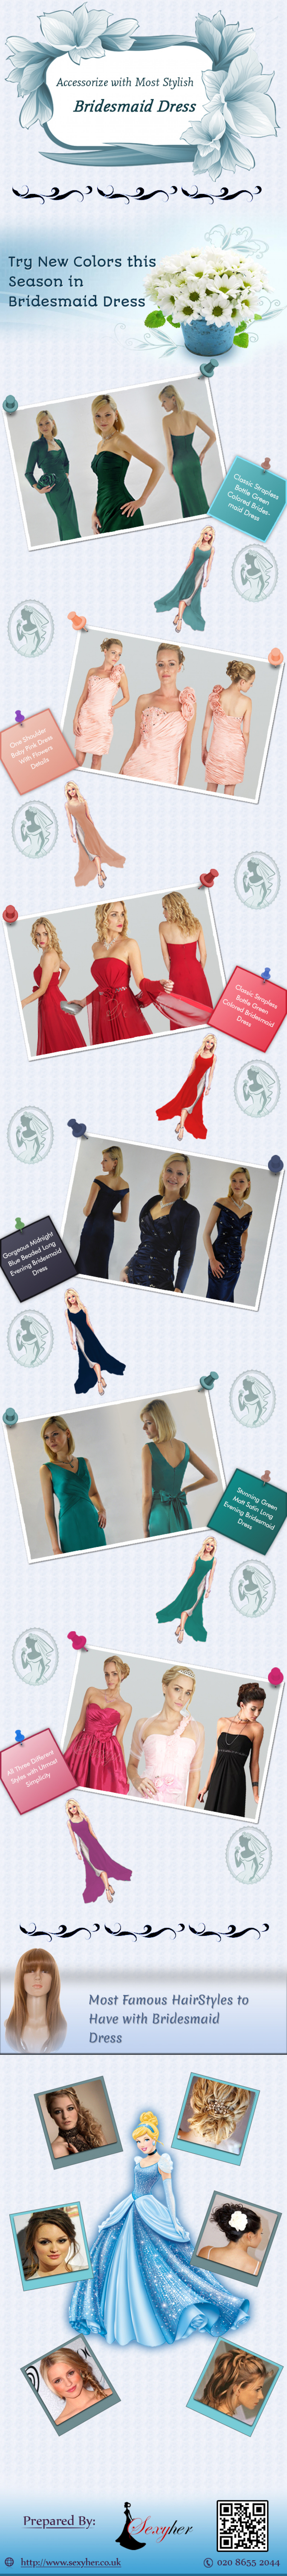 Accessorize with Most Stylish Bridesmaid Dress Infographic